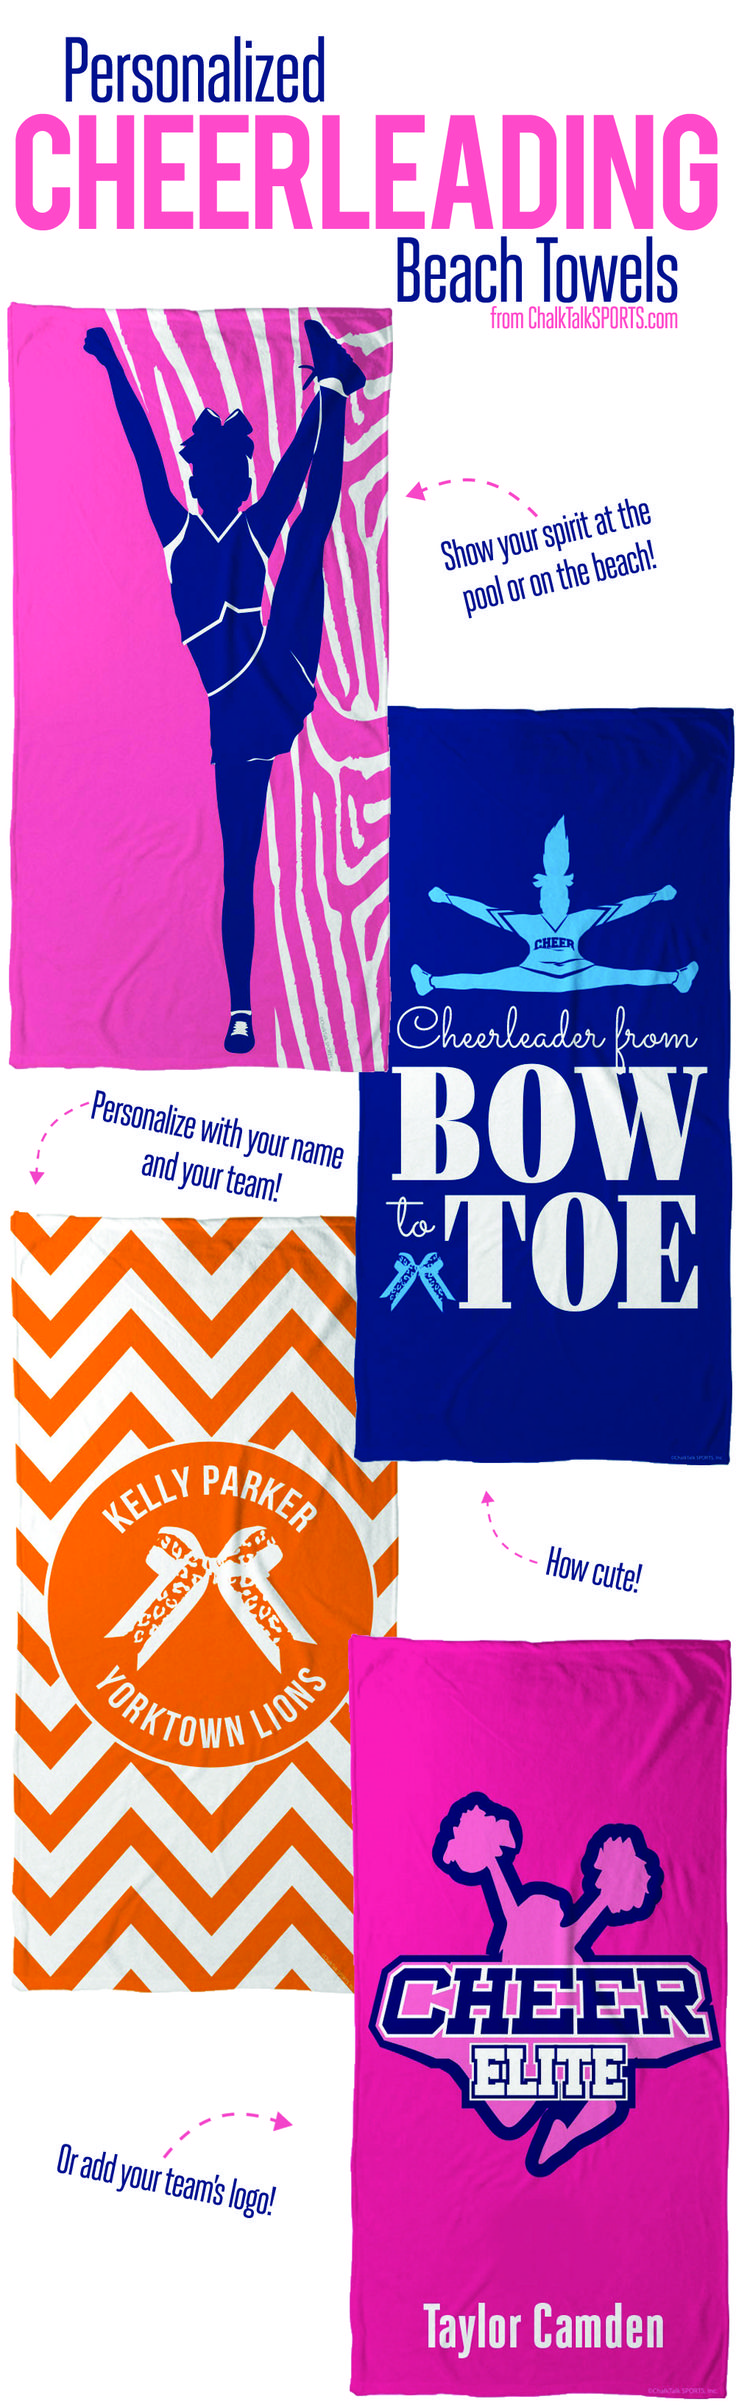 Show your cheer spirit at the pool or on the beach with our personalized cheerleading towels from ChalkTalkSPORTS.com!